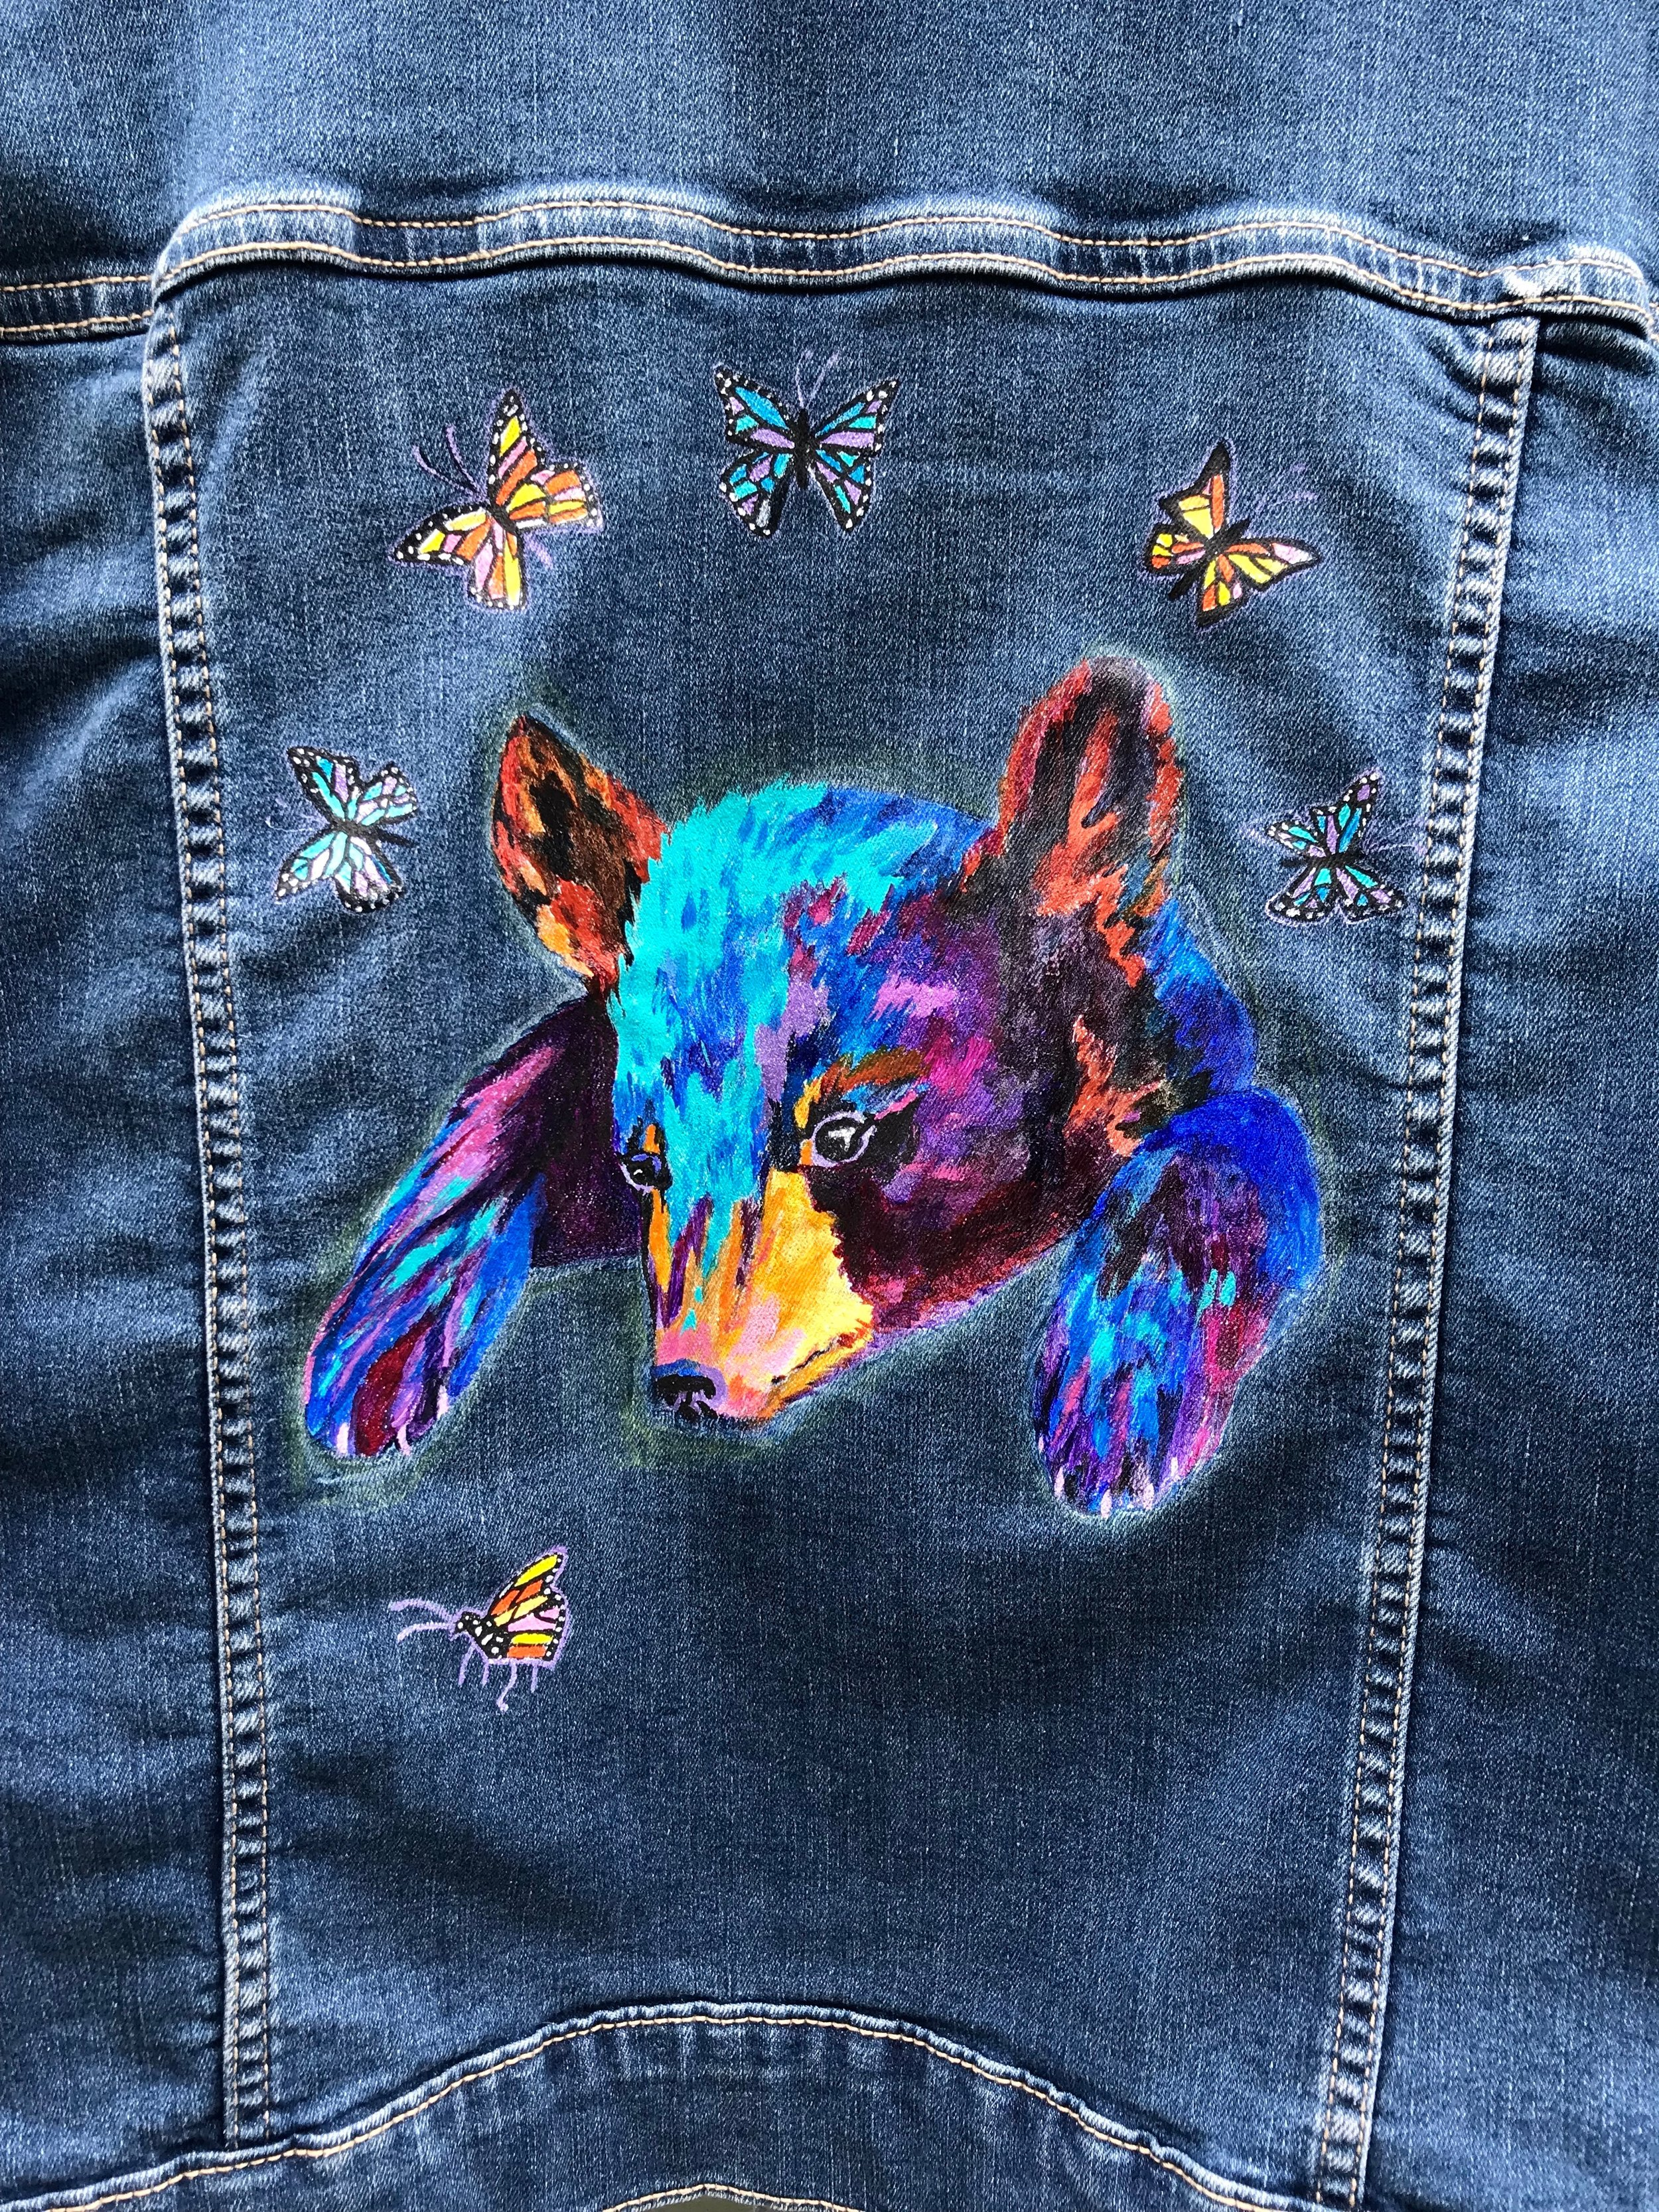 Day 356. Hand-painted Bear with Butterflies on a Jean Jacket